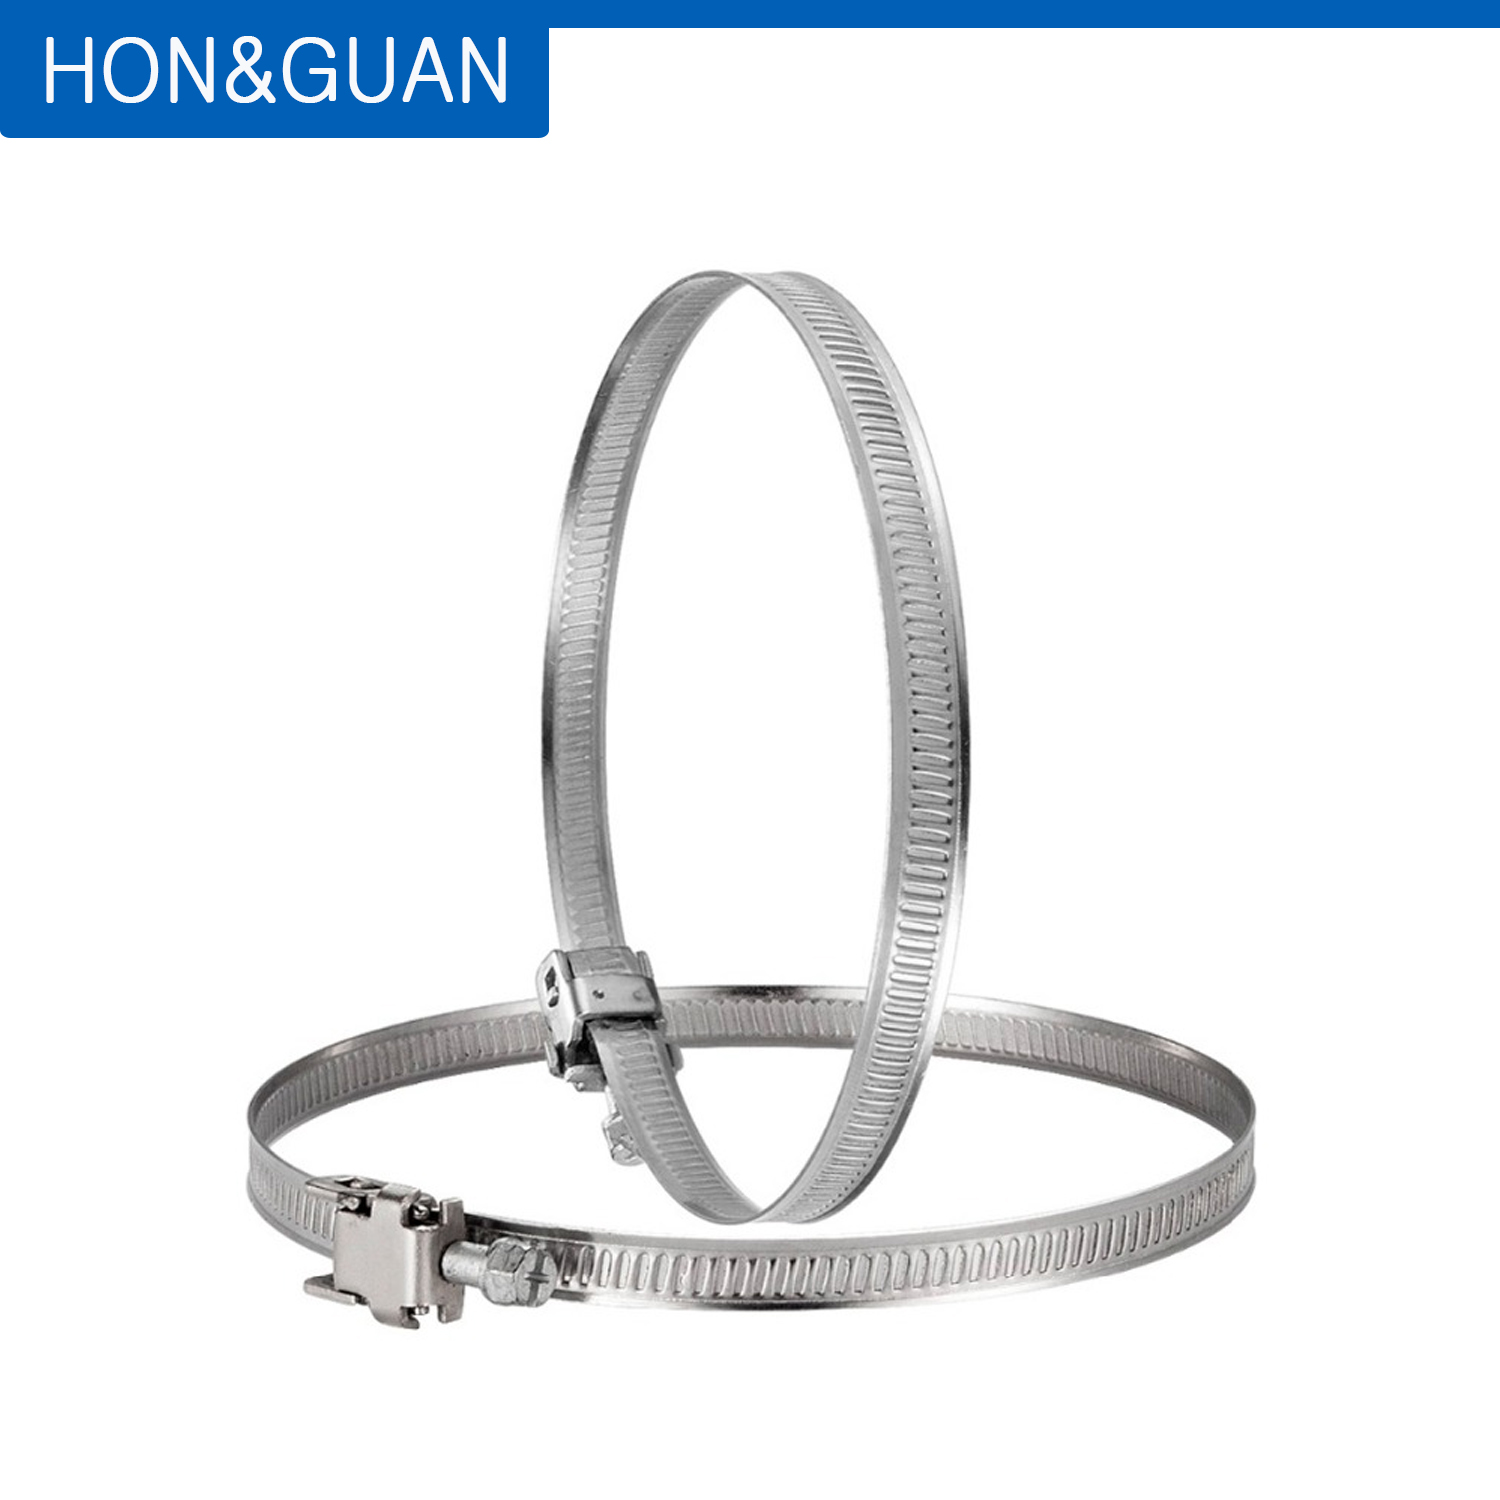 2pcs 4inch 100mm Stainless Steel Hose Clamps Hose Clips Duct Clamp